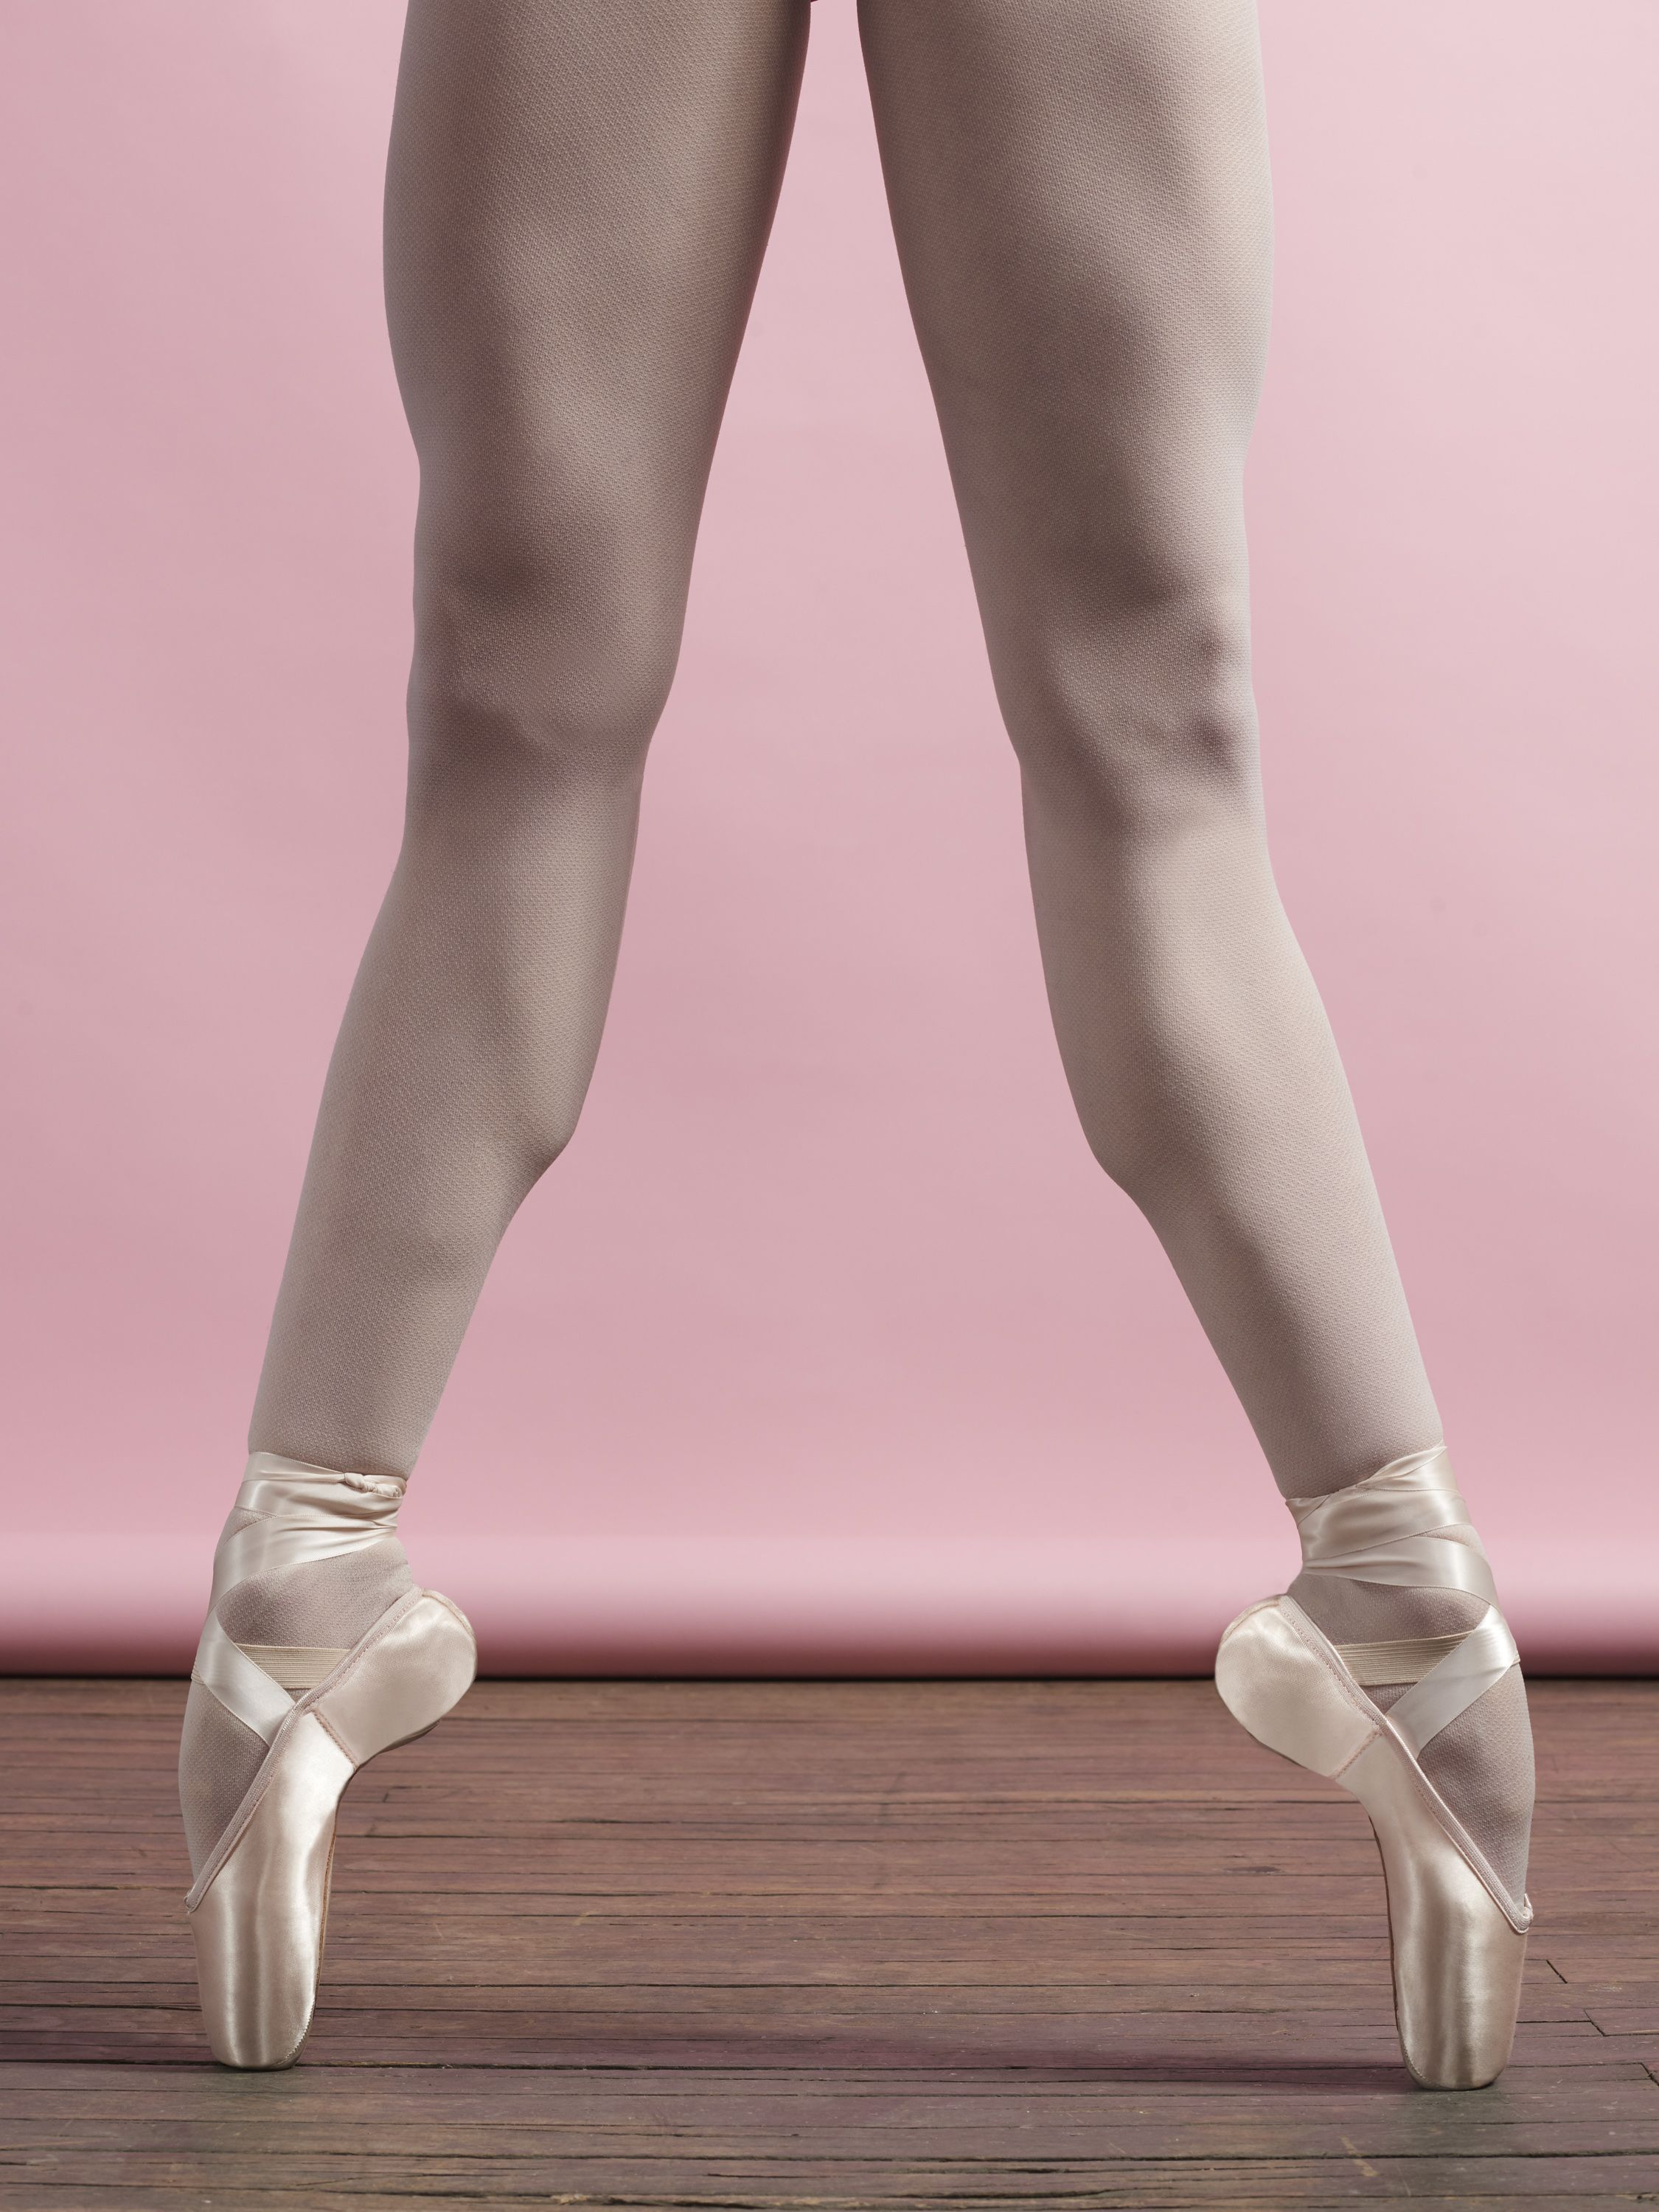 Pointe Shoes Should Have Great Fit And Function While Looking Pretty Like Capezio S New Airess Shoe Fashionfrida Ballet Legs Ballet Photos Ballet Images